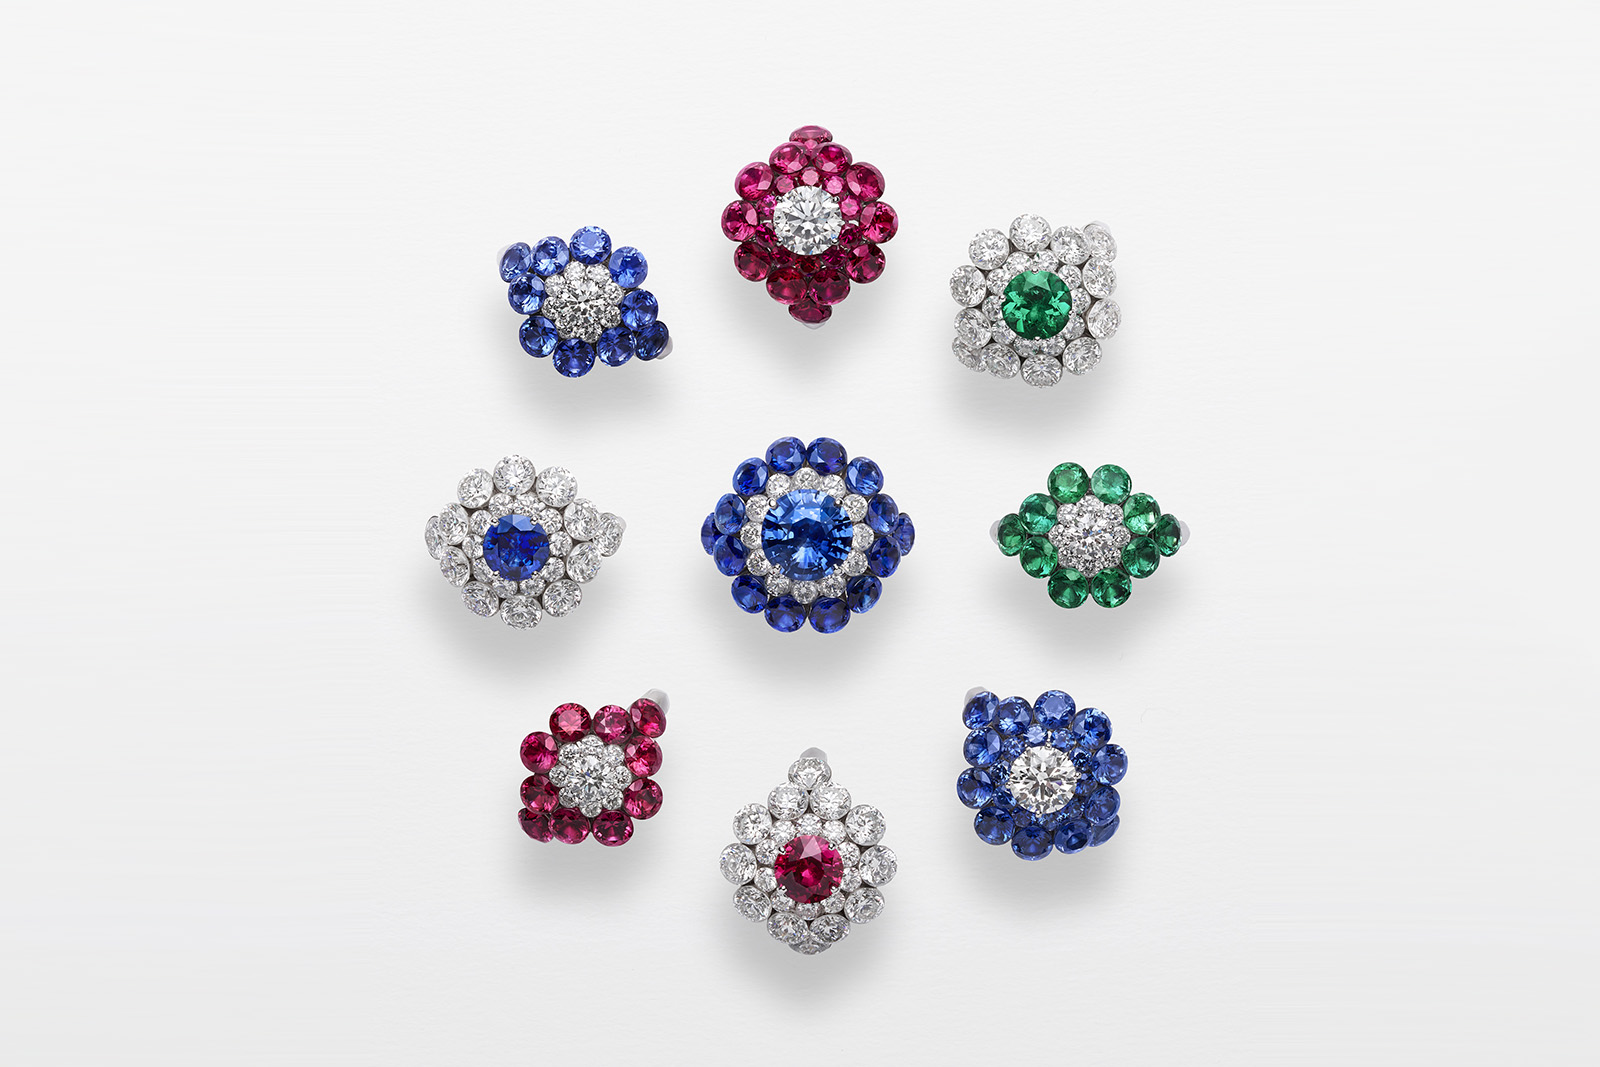 A selection of Chopard 'Magical Setting' rings in diamonds, sapphires, emeralds and rubies in 18k white gold